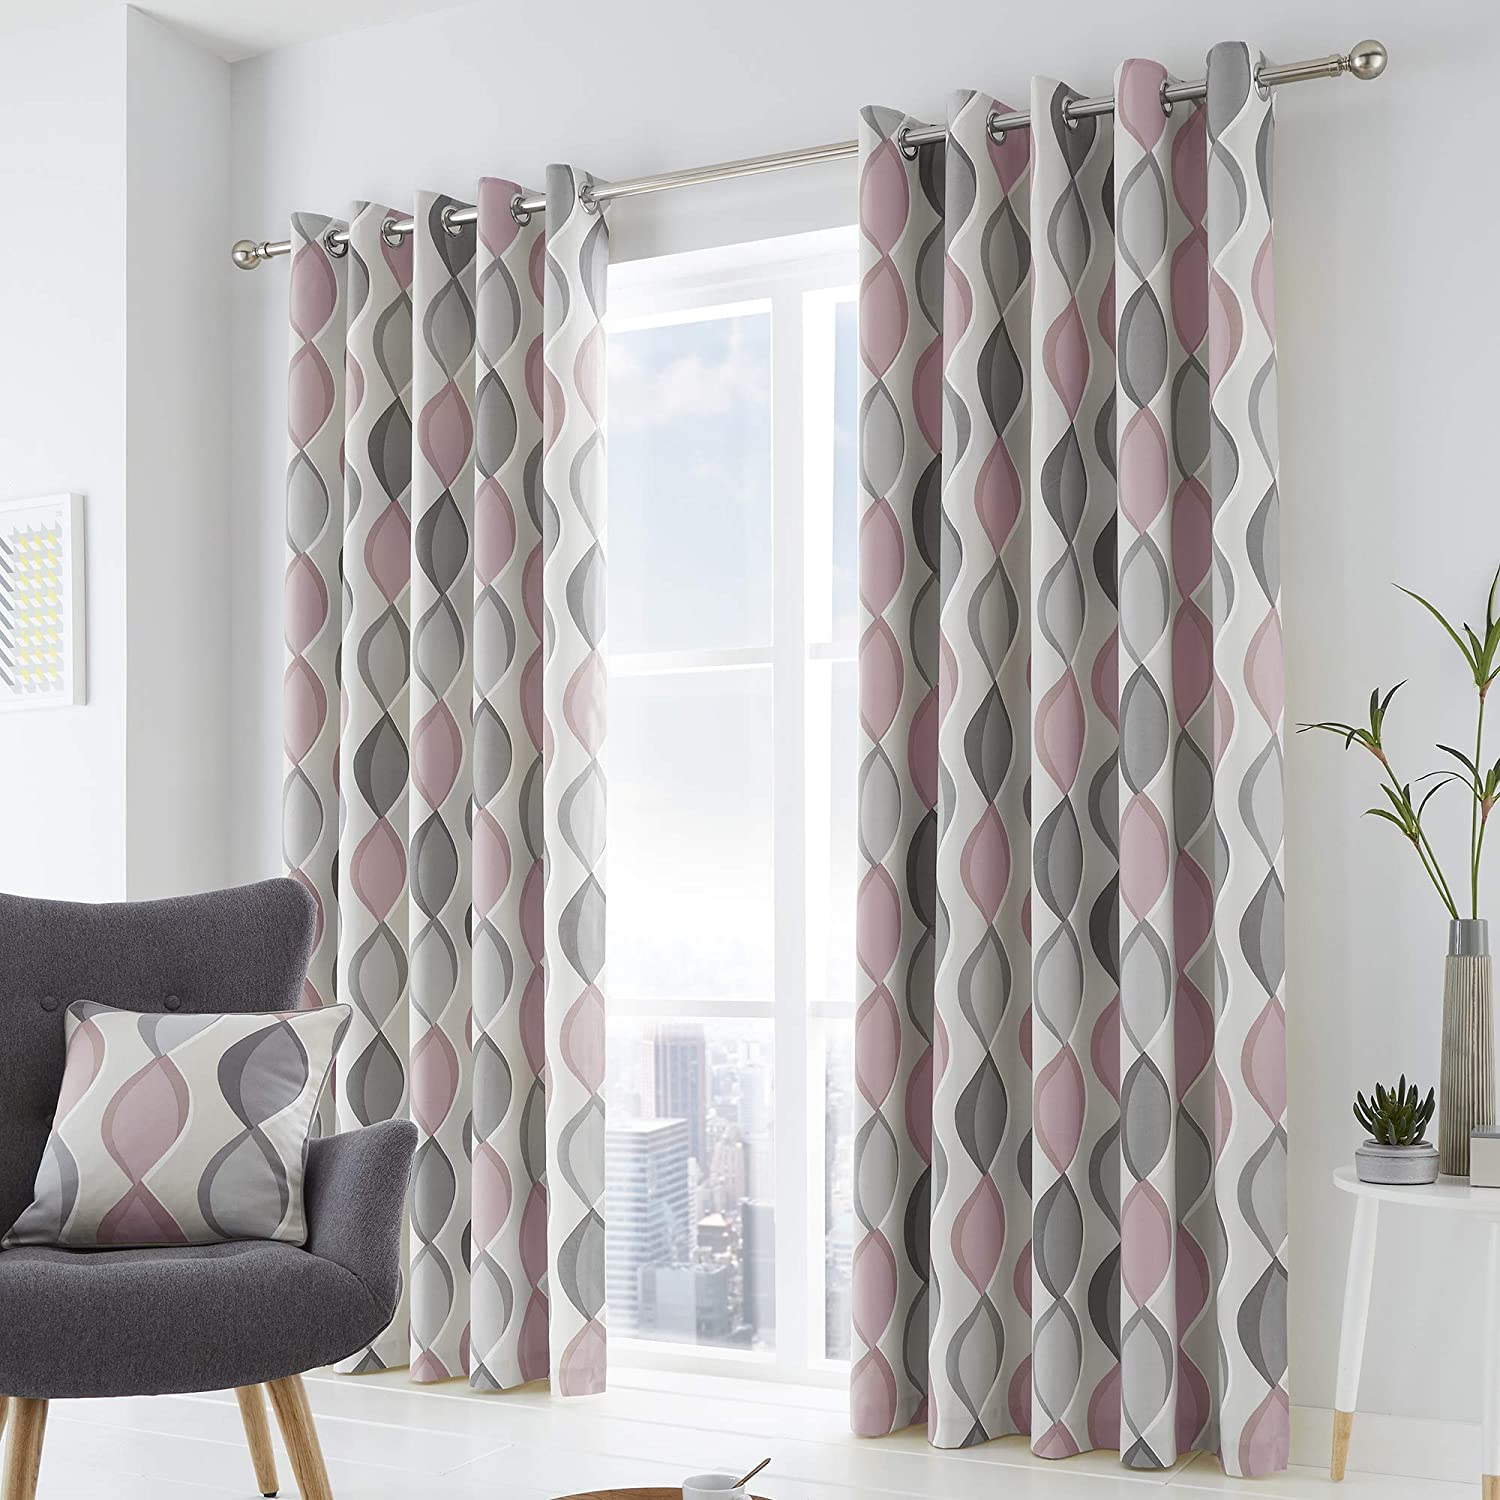 """Fusion Lennox 100% Cotton Eyelet Lined Curtains, Grey/Blush, 66 x 90 Inch, w168cm (66"""") x d229cm (90"""") w168cm (66"""") x d229cm (90"""") Grey / Blush"""